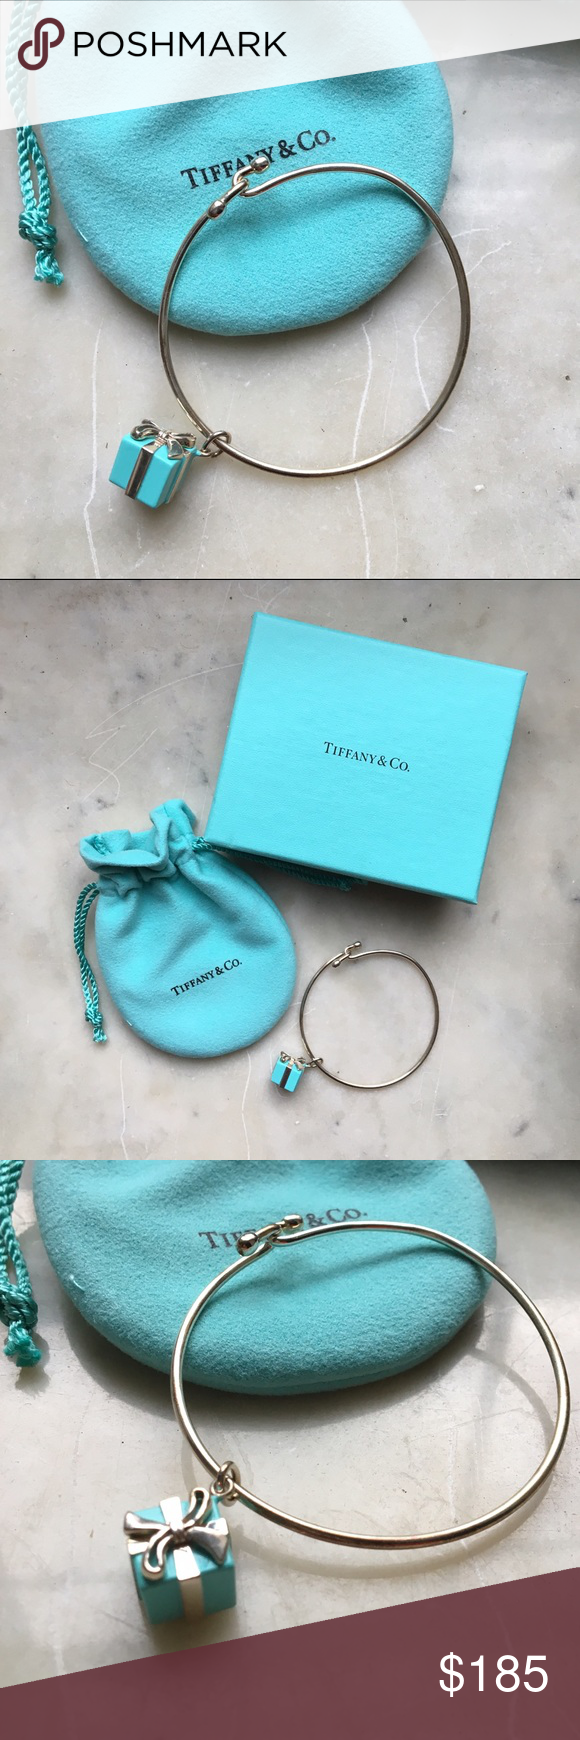 34++ Does all tiffany jewelry come in the blue box ideas in 2021